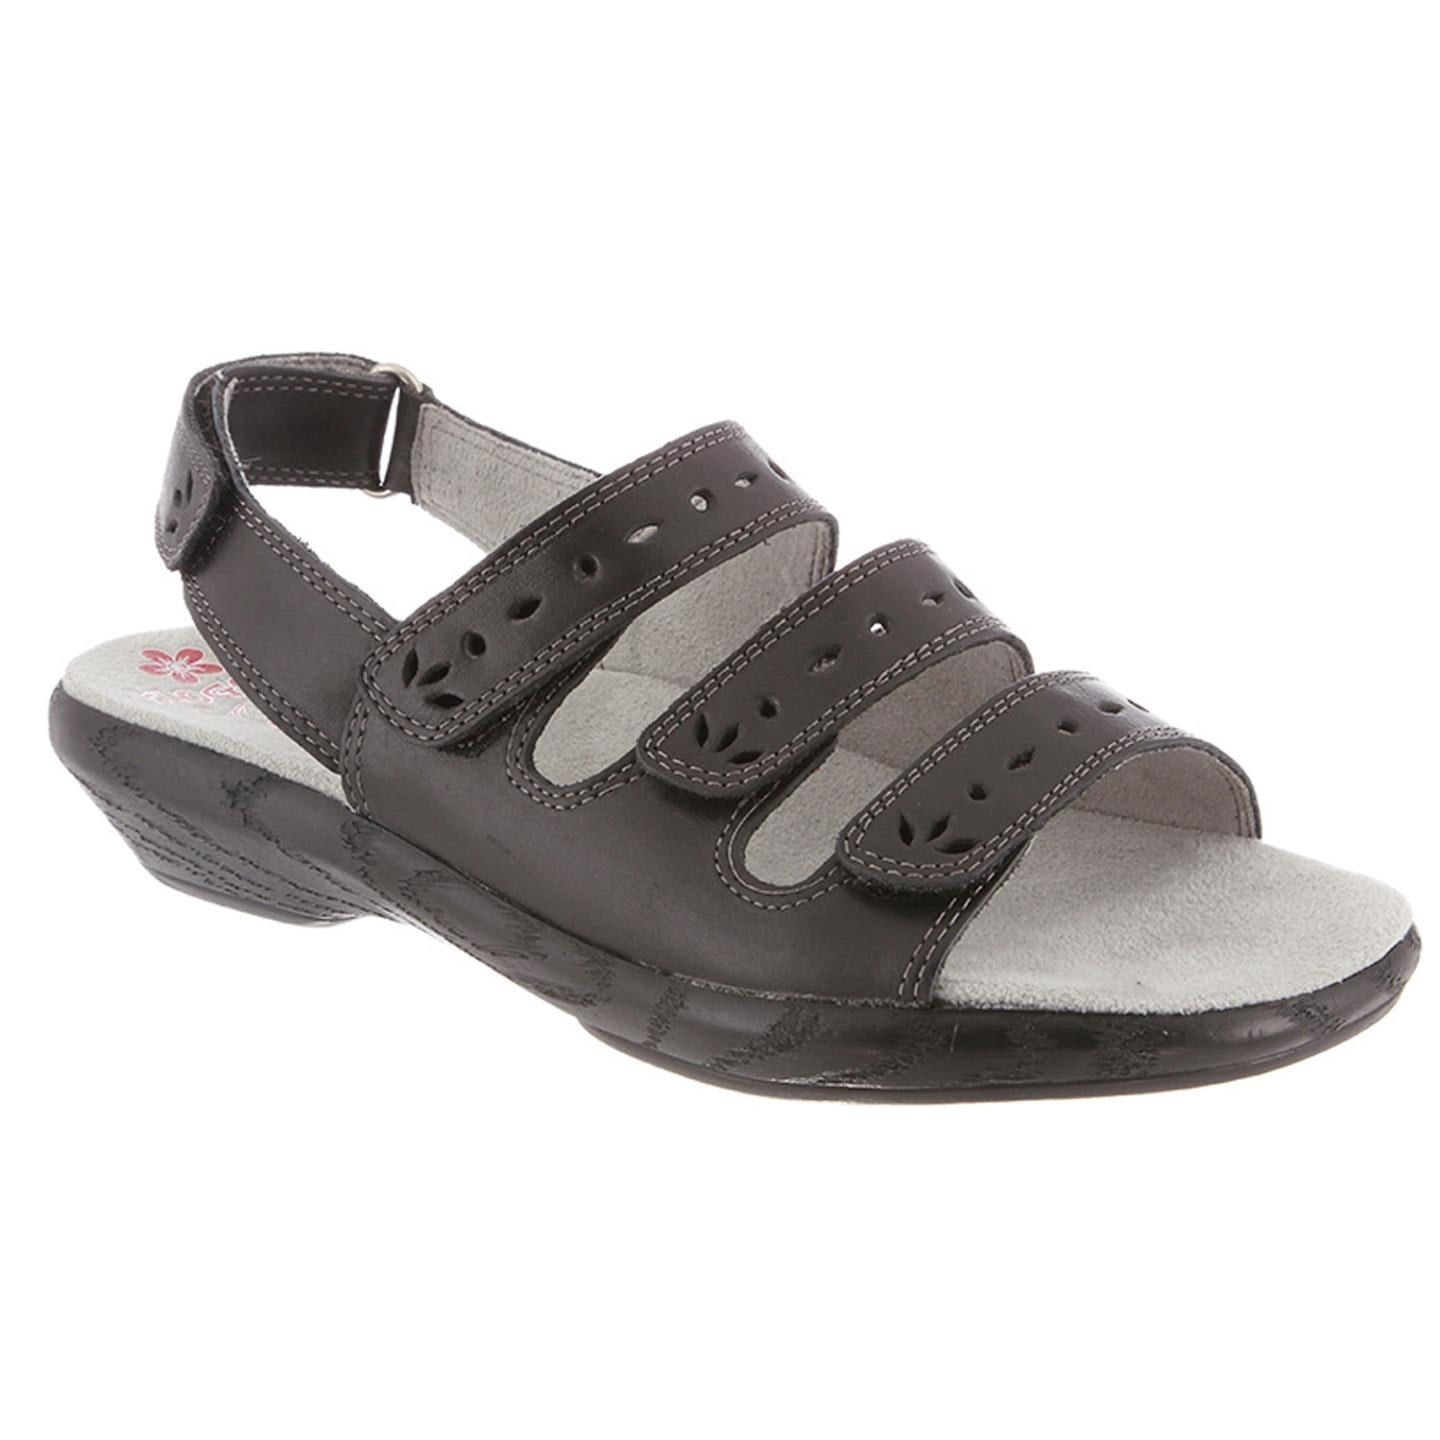 Lacie By Klogs Black Bali Womens Leather Sandals 7.5 M